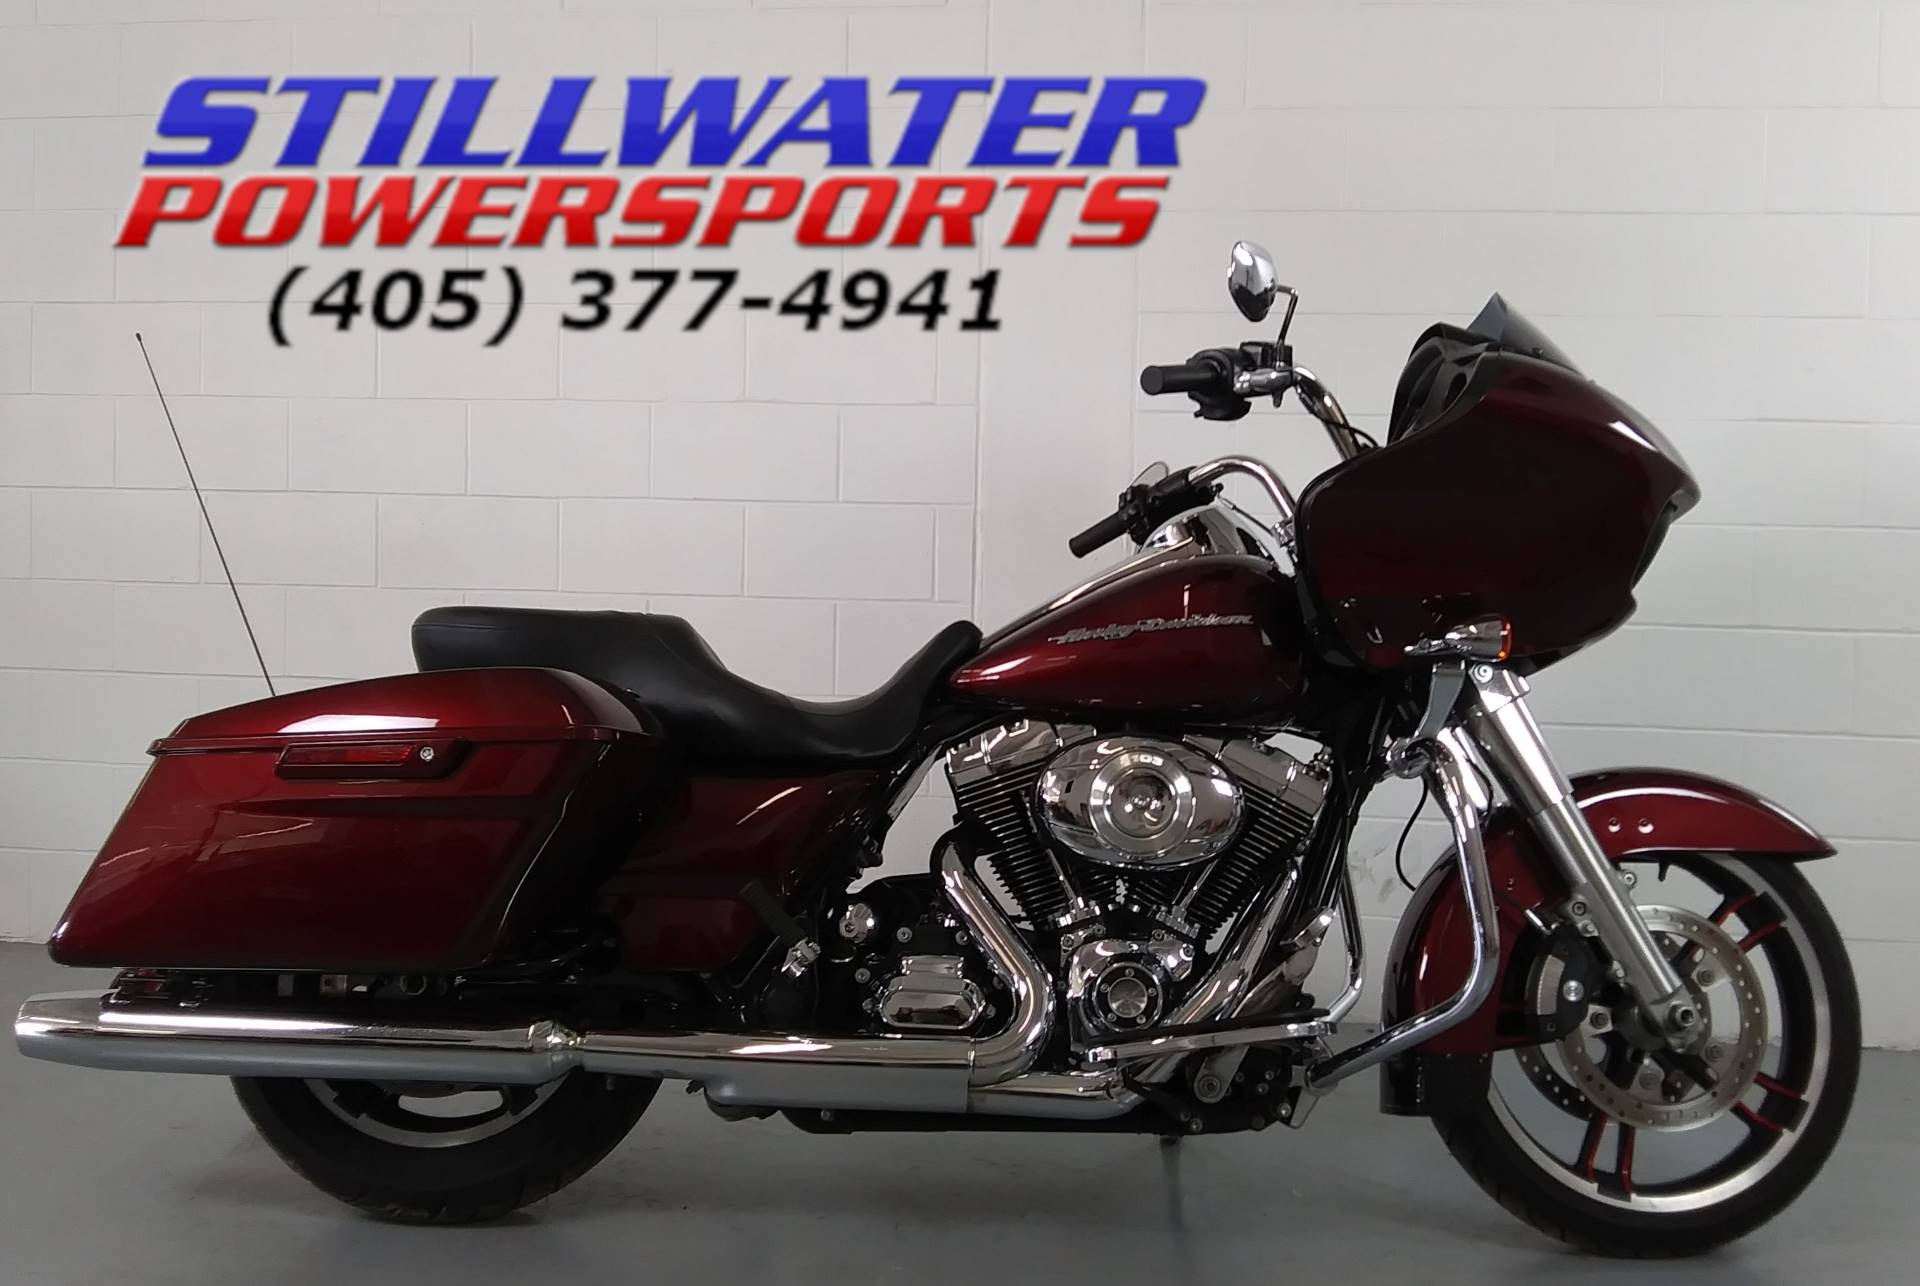 2015 Harley-Davidson Road Glide® in Stillwater, Oklahoma - Photo 1